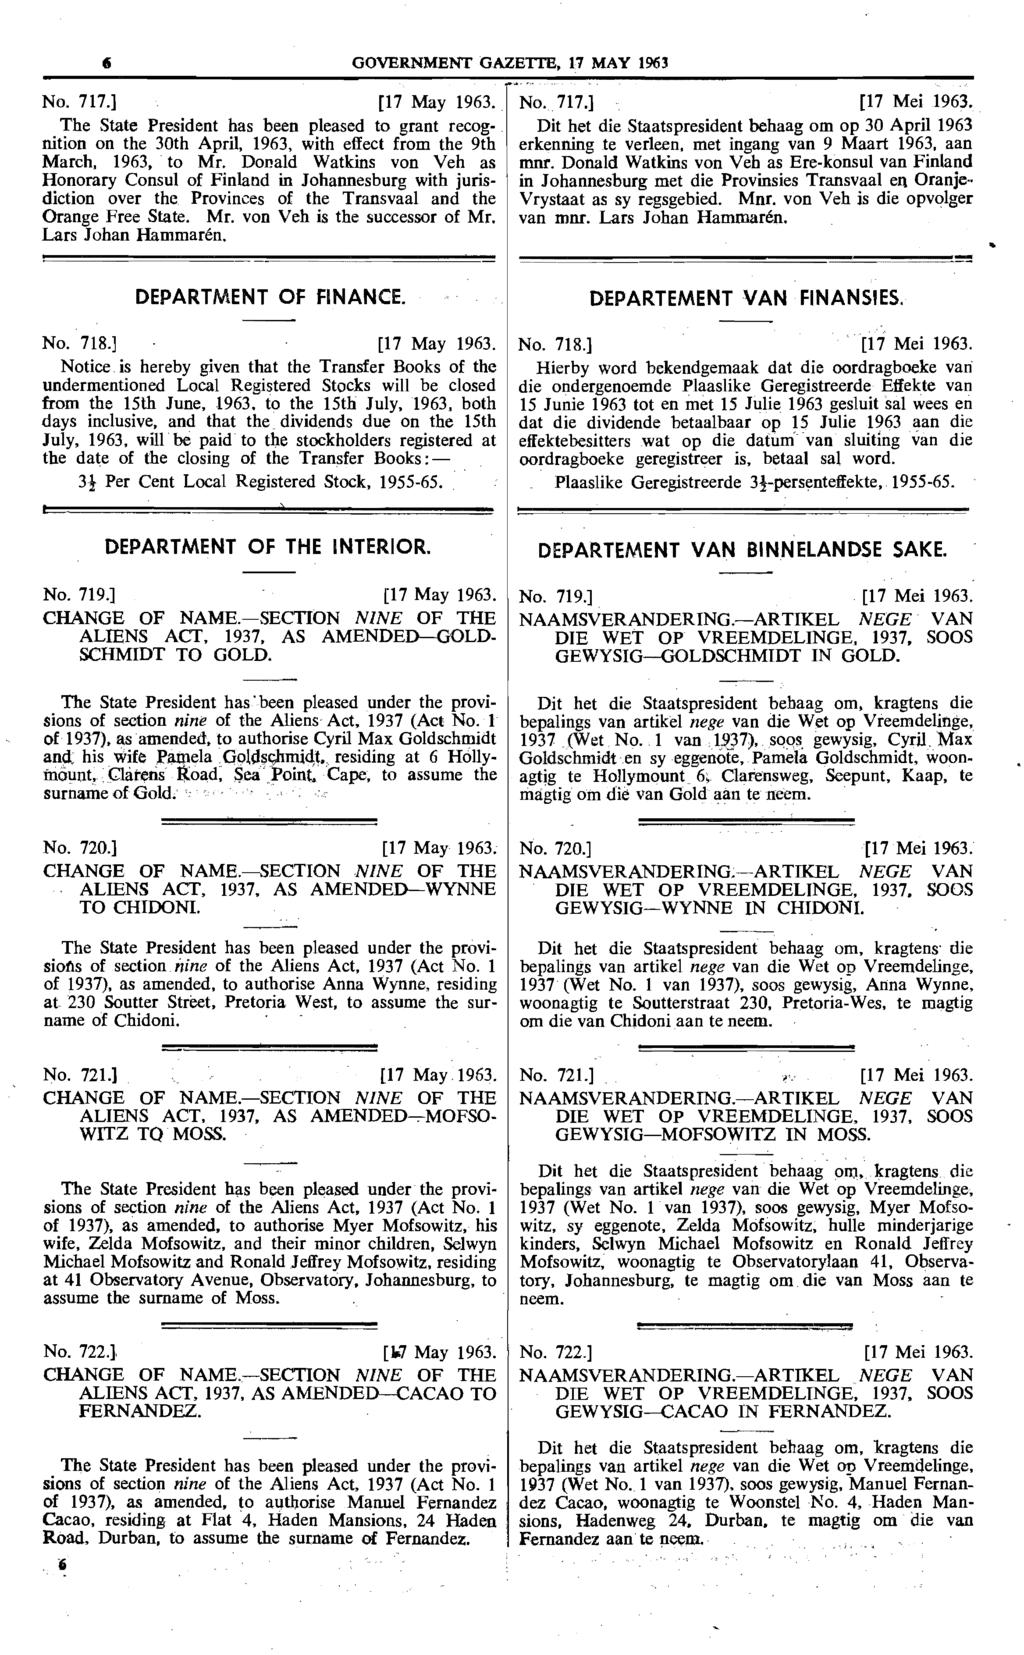 GOVERNMENT GAZEITE, 17 MAY 1963 No. 717.] [17 May 1963. The State President has been pleased to grant recognition on the 30th April, 1963, with effect from the 9th March, 1963.' to Mr.